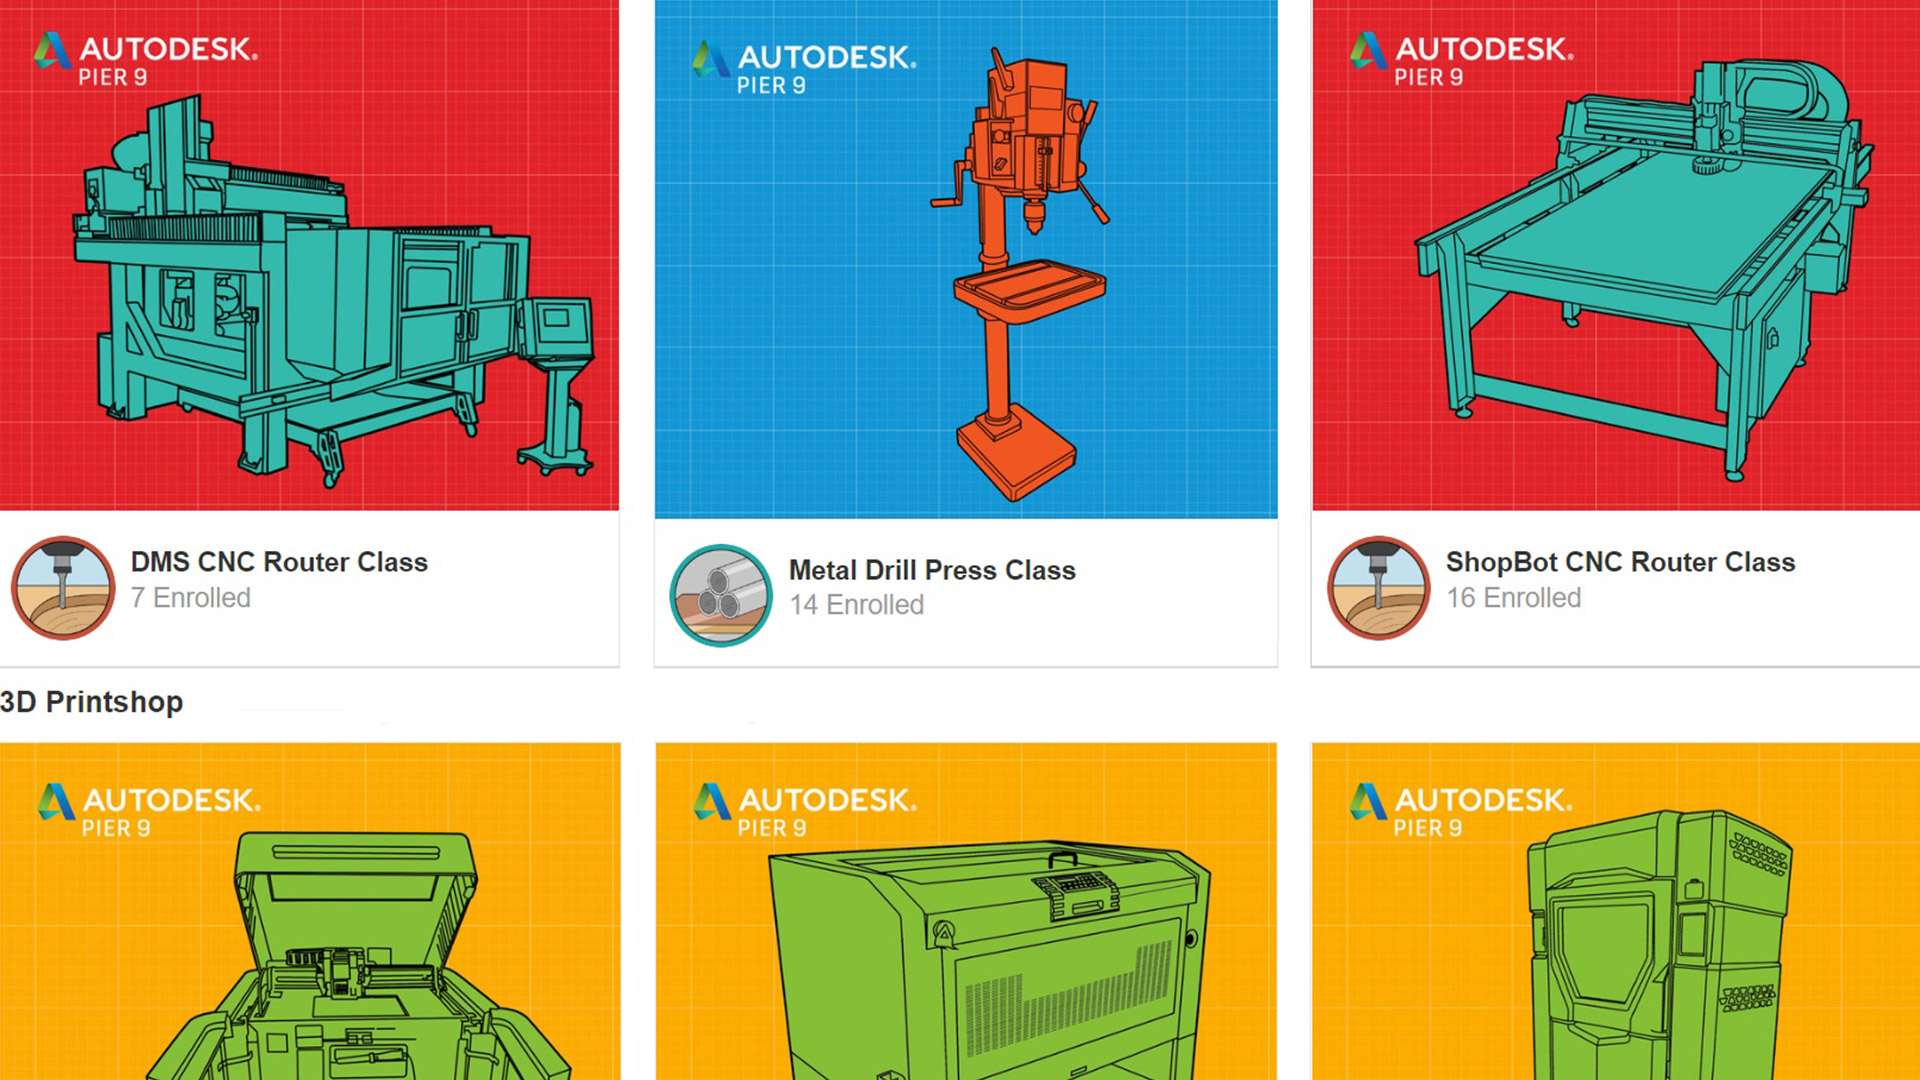 Autodesk's Pier 9 Releases Free Workshops for Wood, Metal, CNC & 3D Print Machinery | All3DP